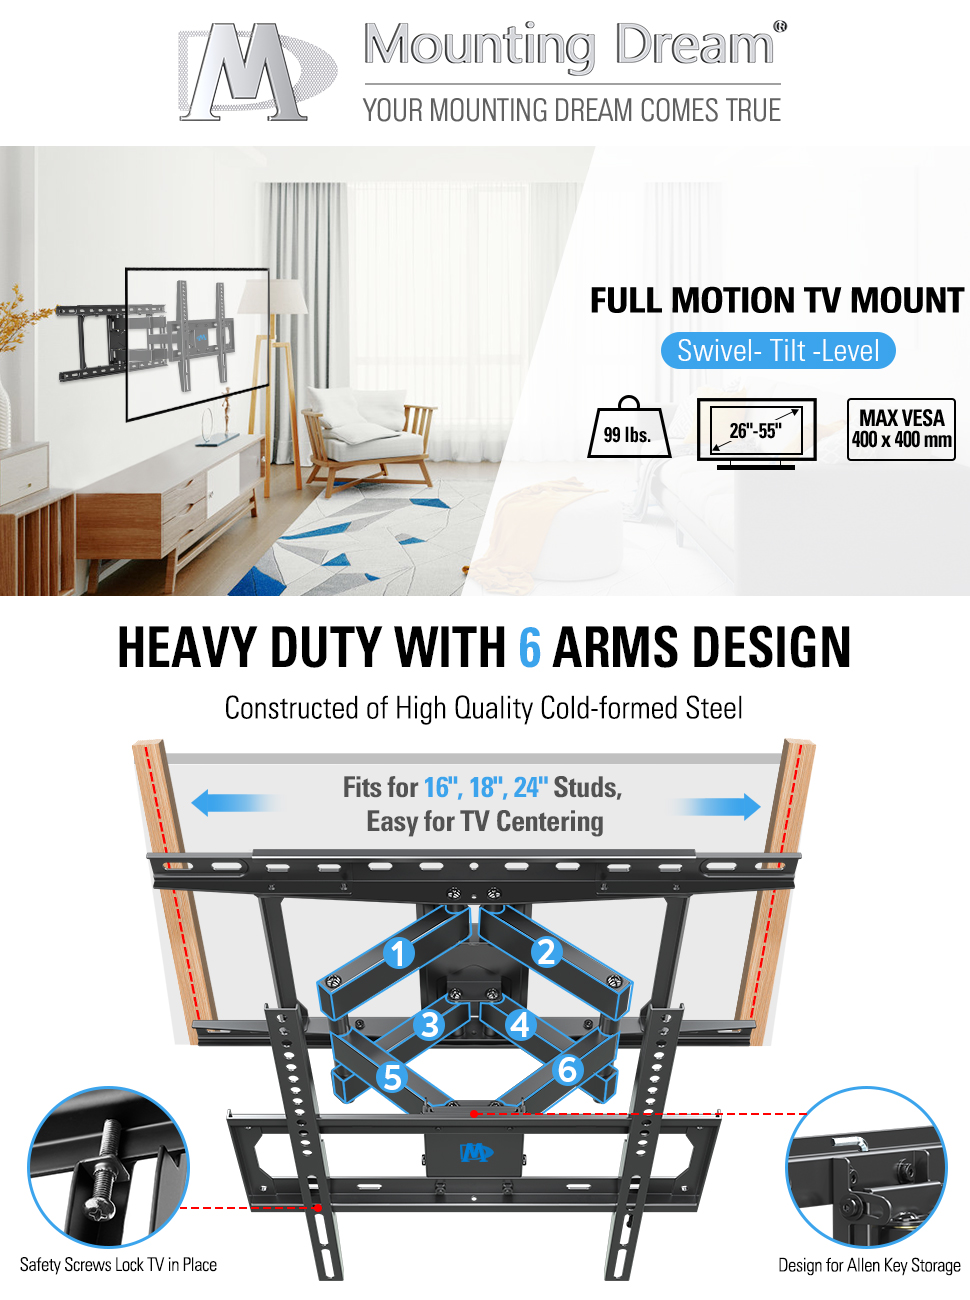 """8ac04474 3471 46de 8298 fe9961fa2093.  UX970 V1    - Mounting Dream TV Mount Full Motion TV Wall Mounts for 26-55 Inch Flat Screen TV, Wall Mount TV Bracket with Dual Arms, Max VESA 400x400mm and 99 LBS, Fits 16"""", 18"""", 24"""" Studs MD2380-24K TV Mounts"""